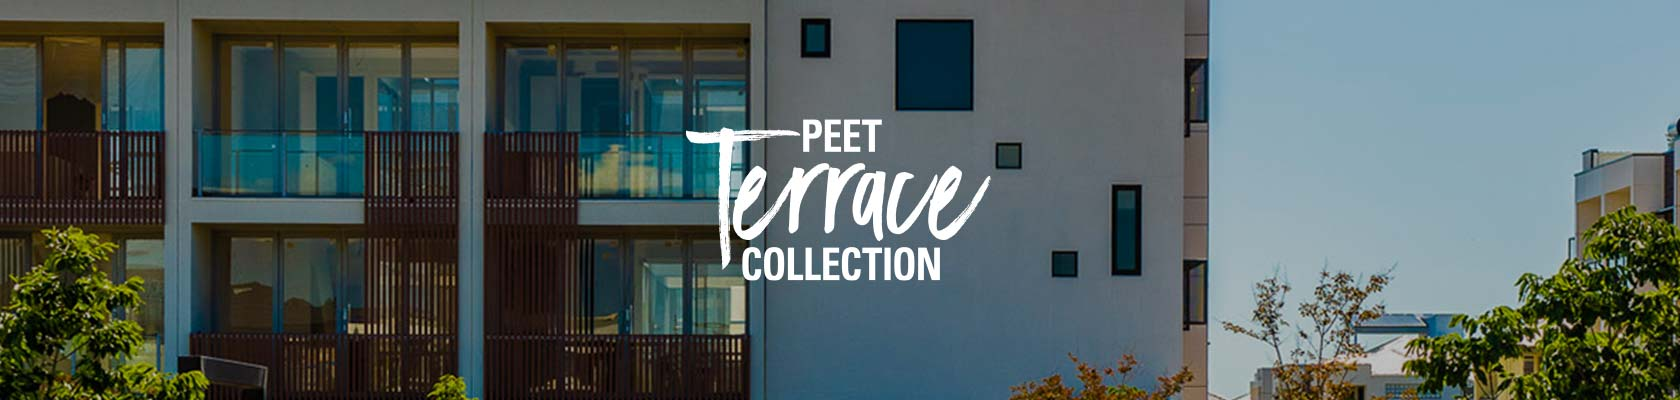 Lightsview Terrace Collection